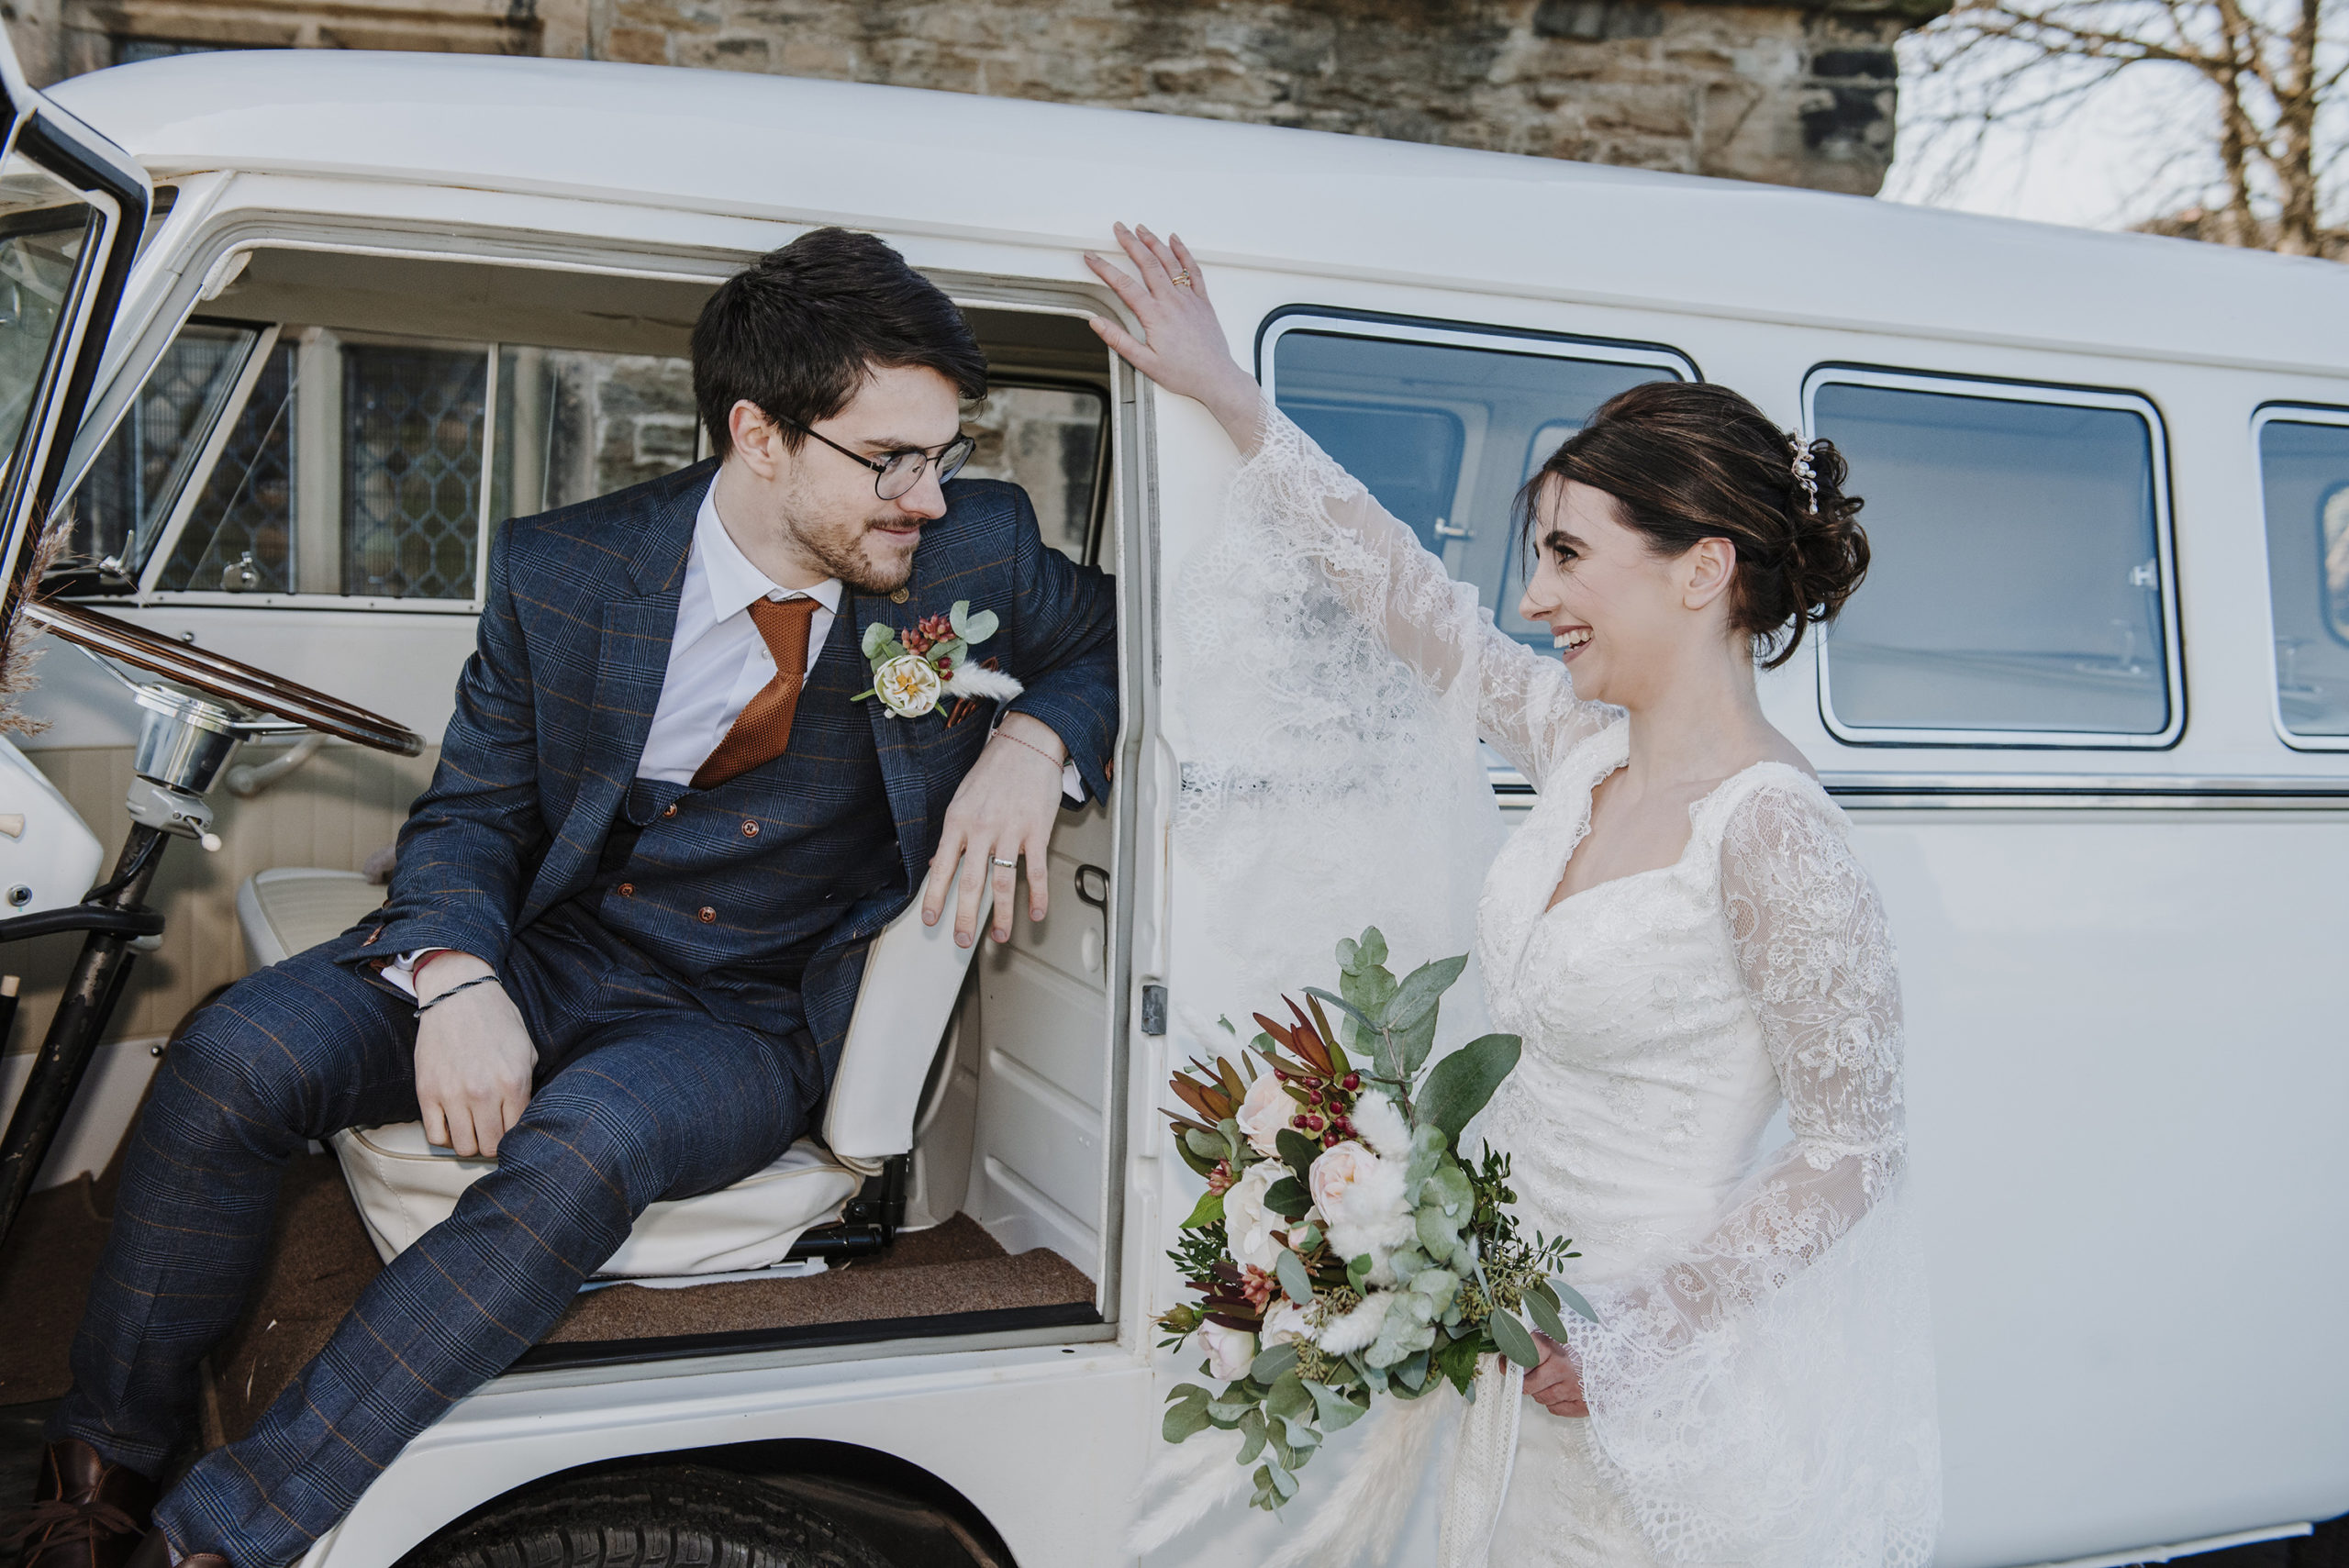 Bride and groom travel in a rustic campervan to their wedding